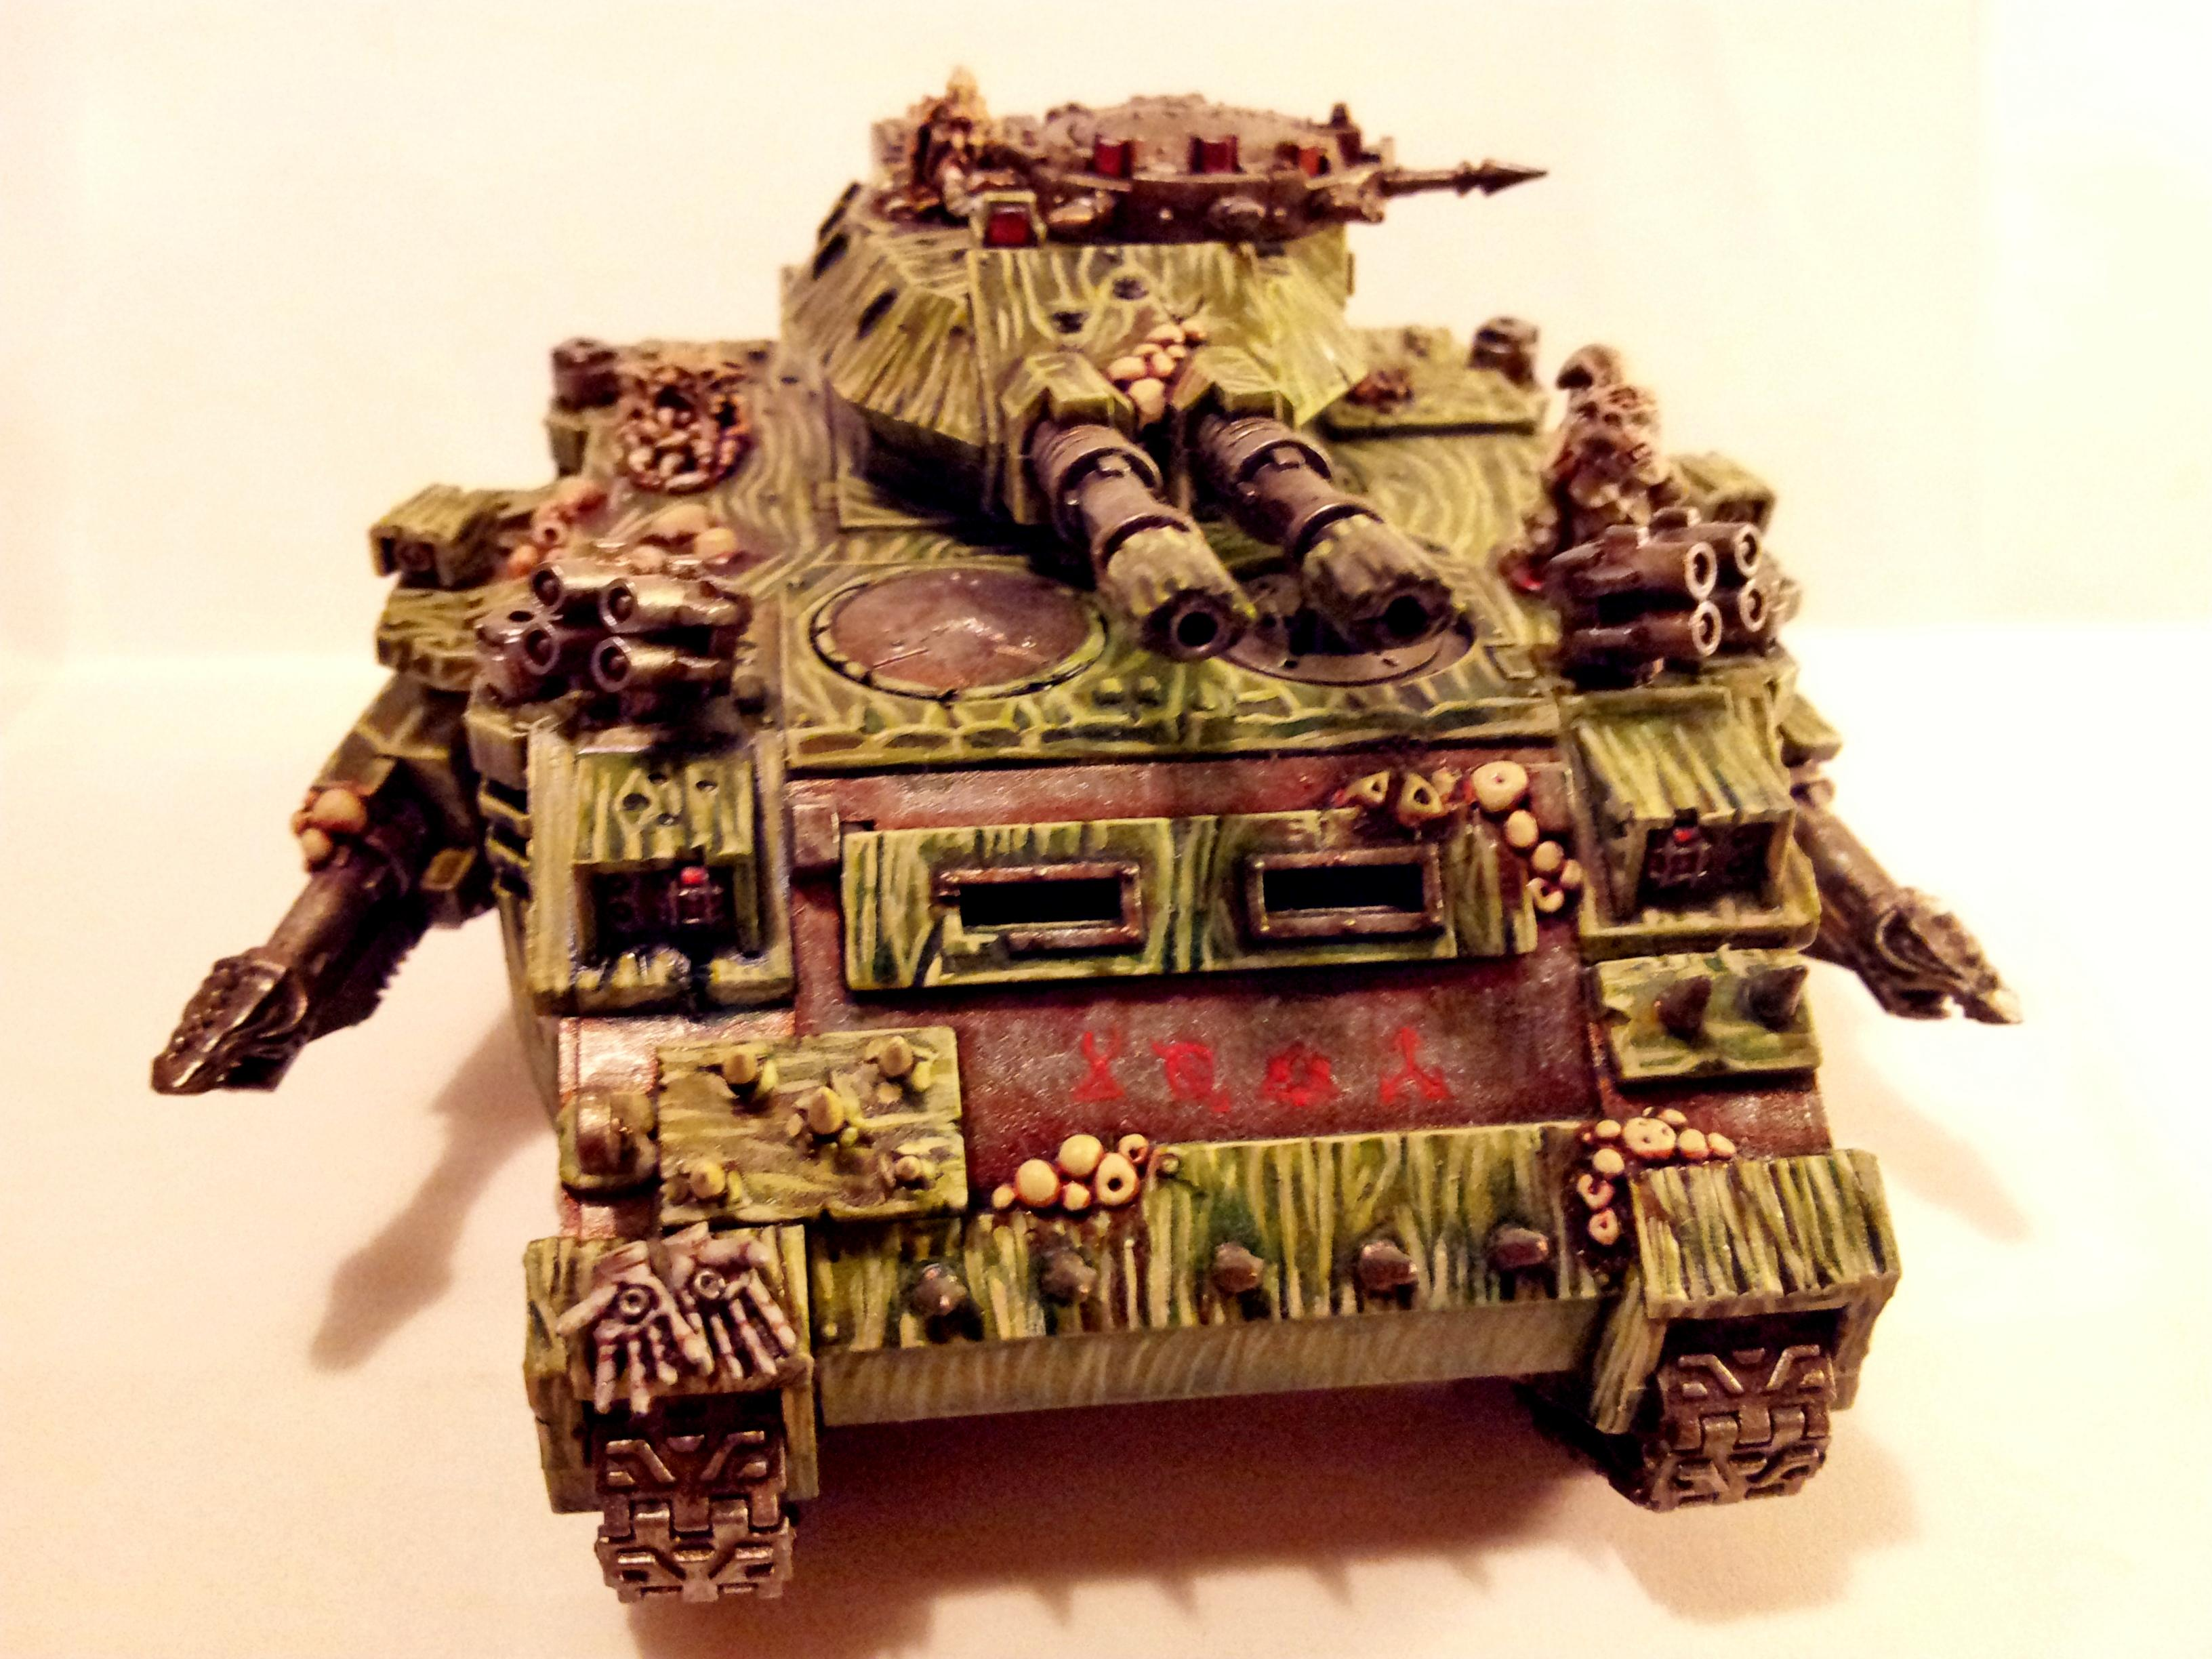 Chaos Space Marines, Chaos Tank, Corrupted, Death Guard, Nurgle, Plague Marines, Predator